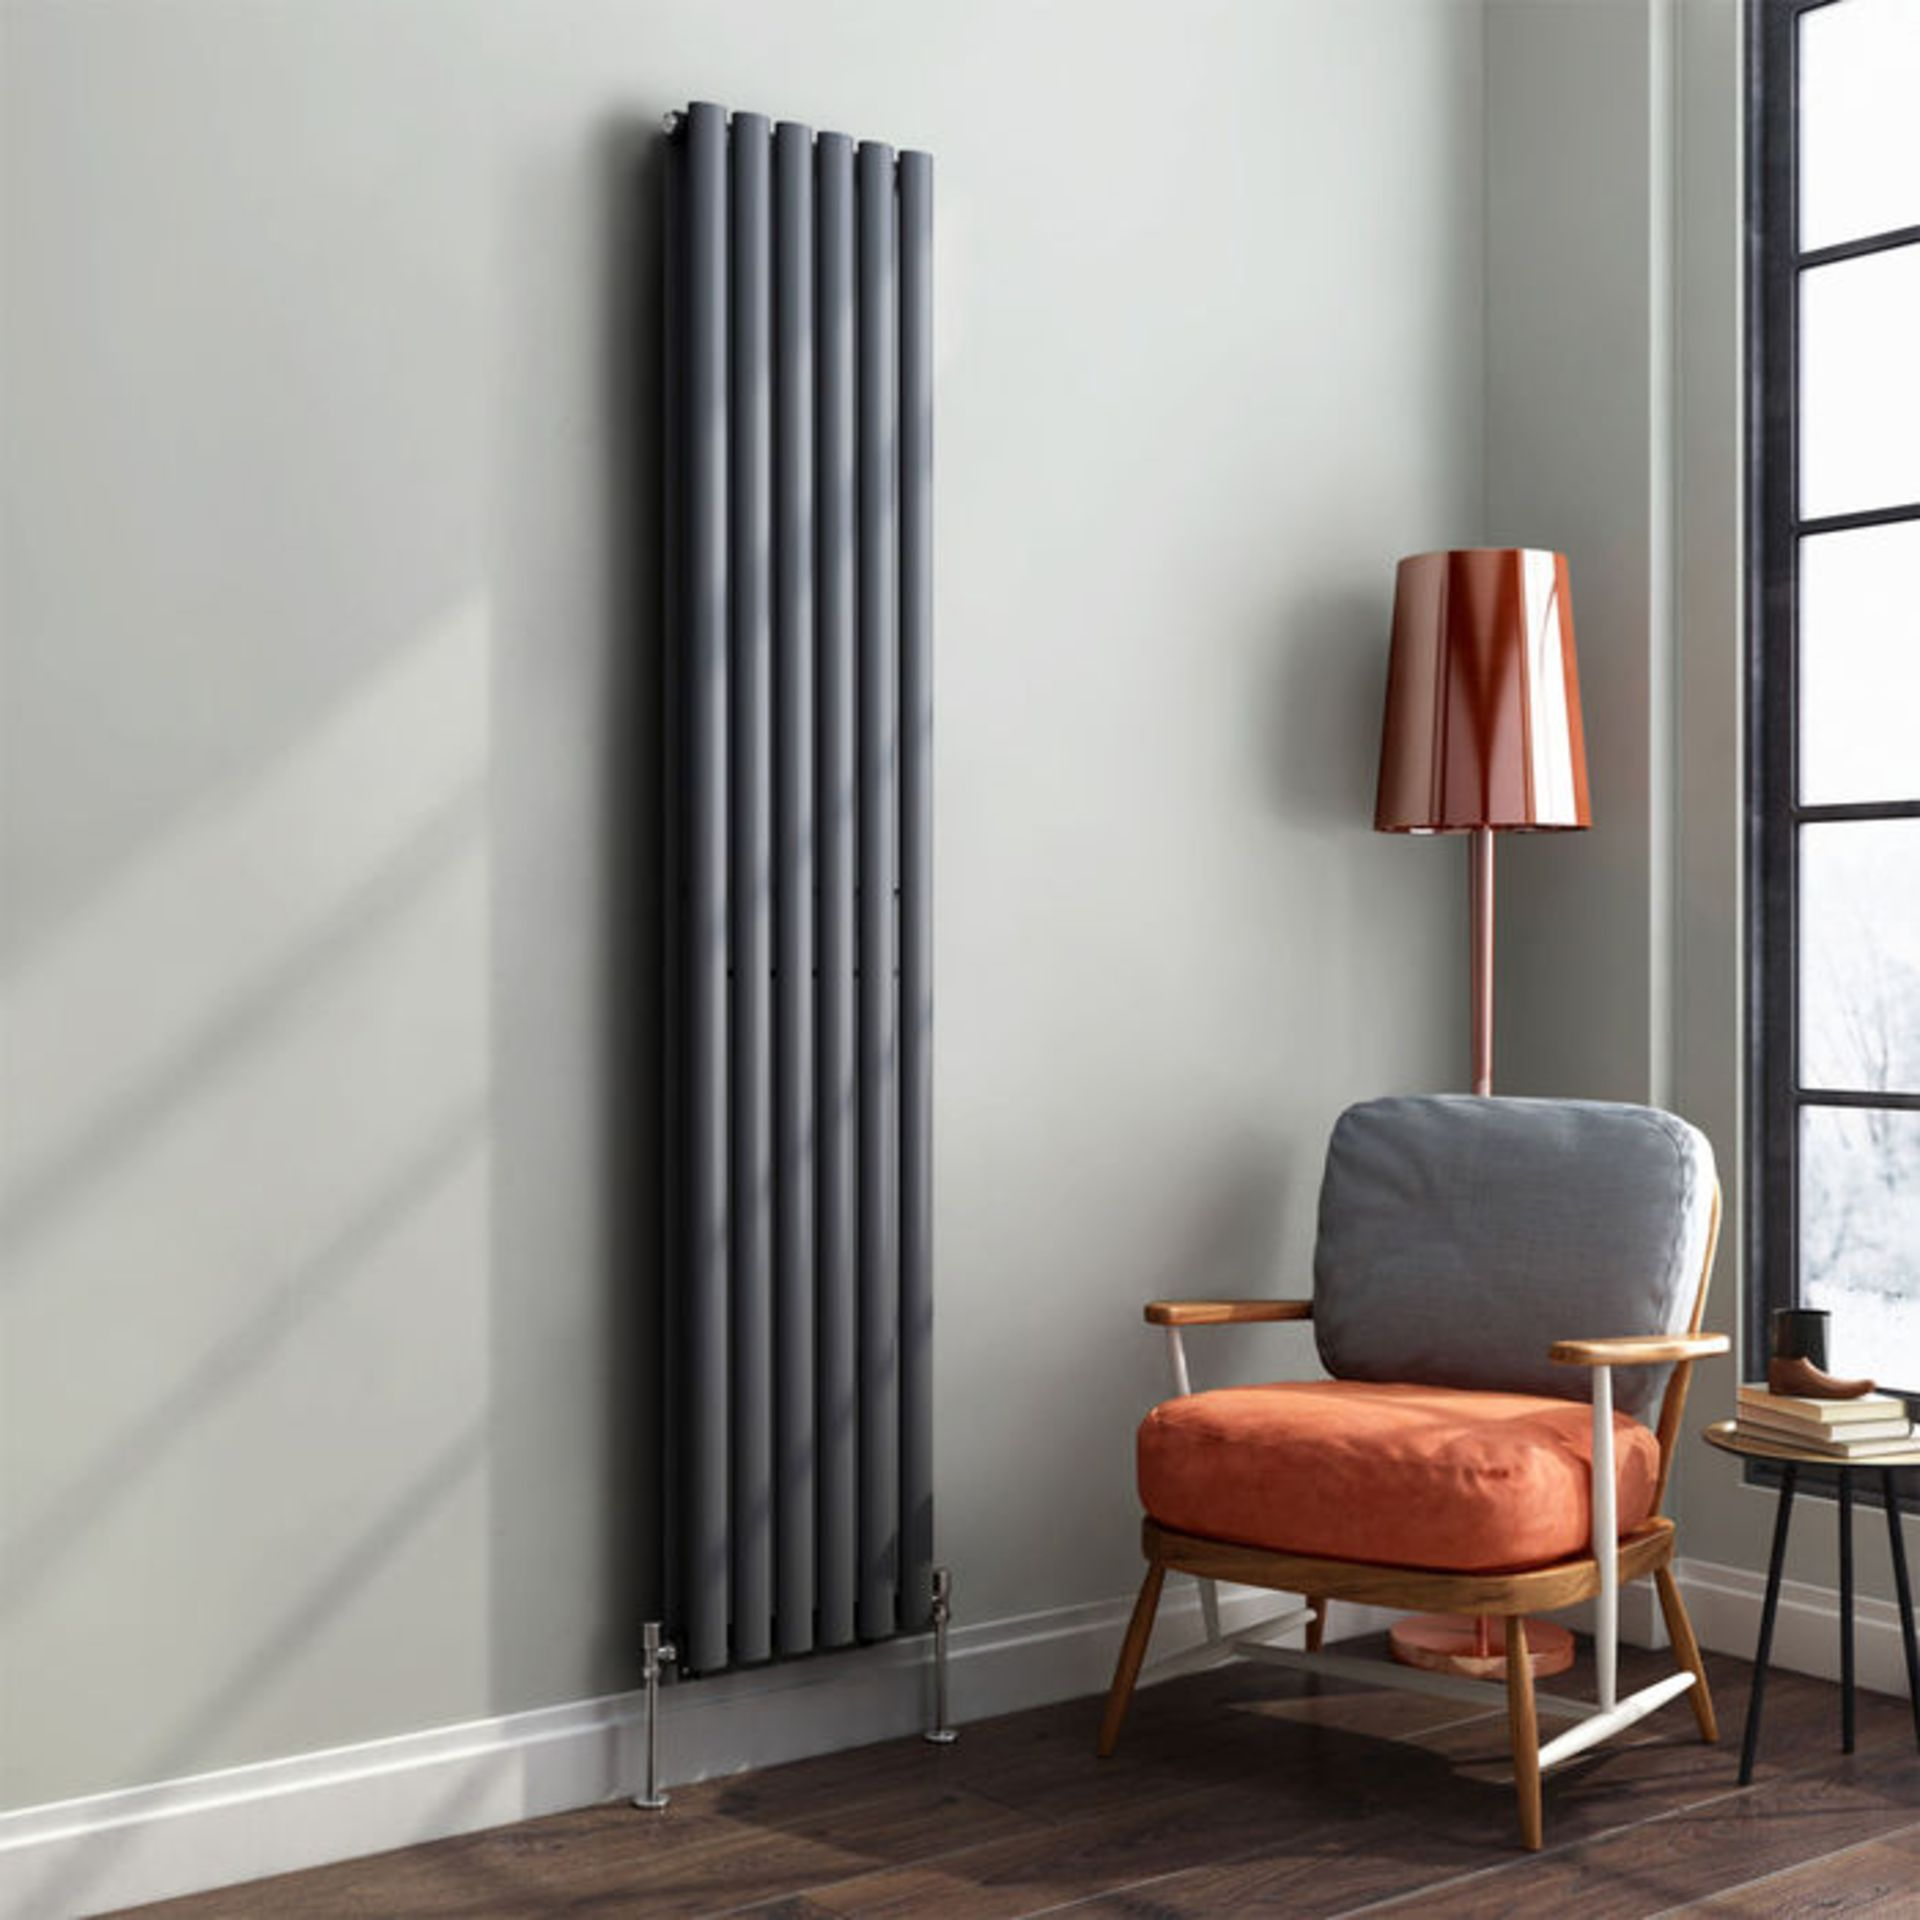 Lot 25 - 1800x360mm Anthracite Double Oval Tube Vertical Radiator. RRP £344.99. Made from high quality ...